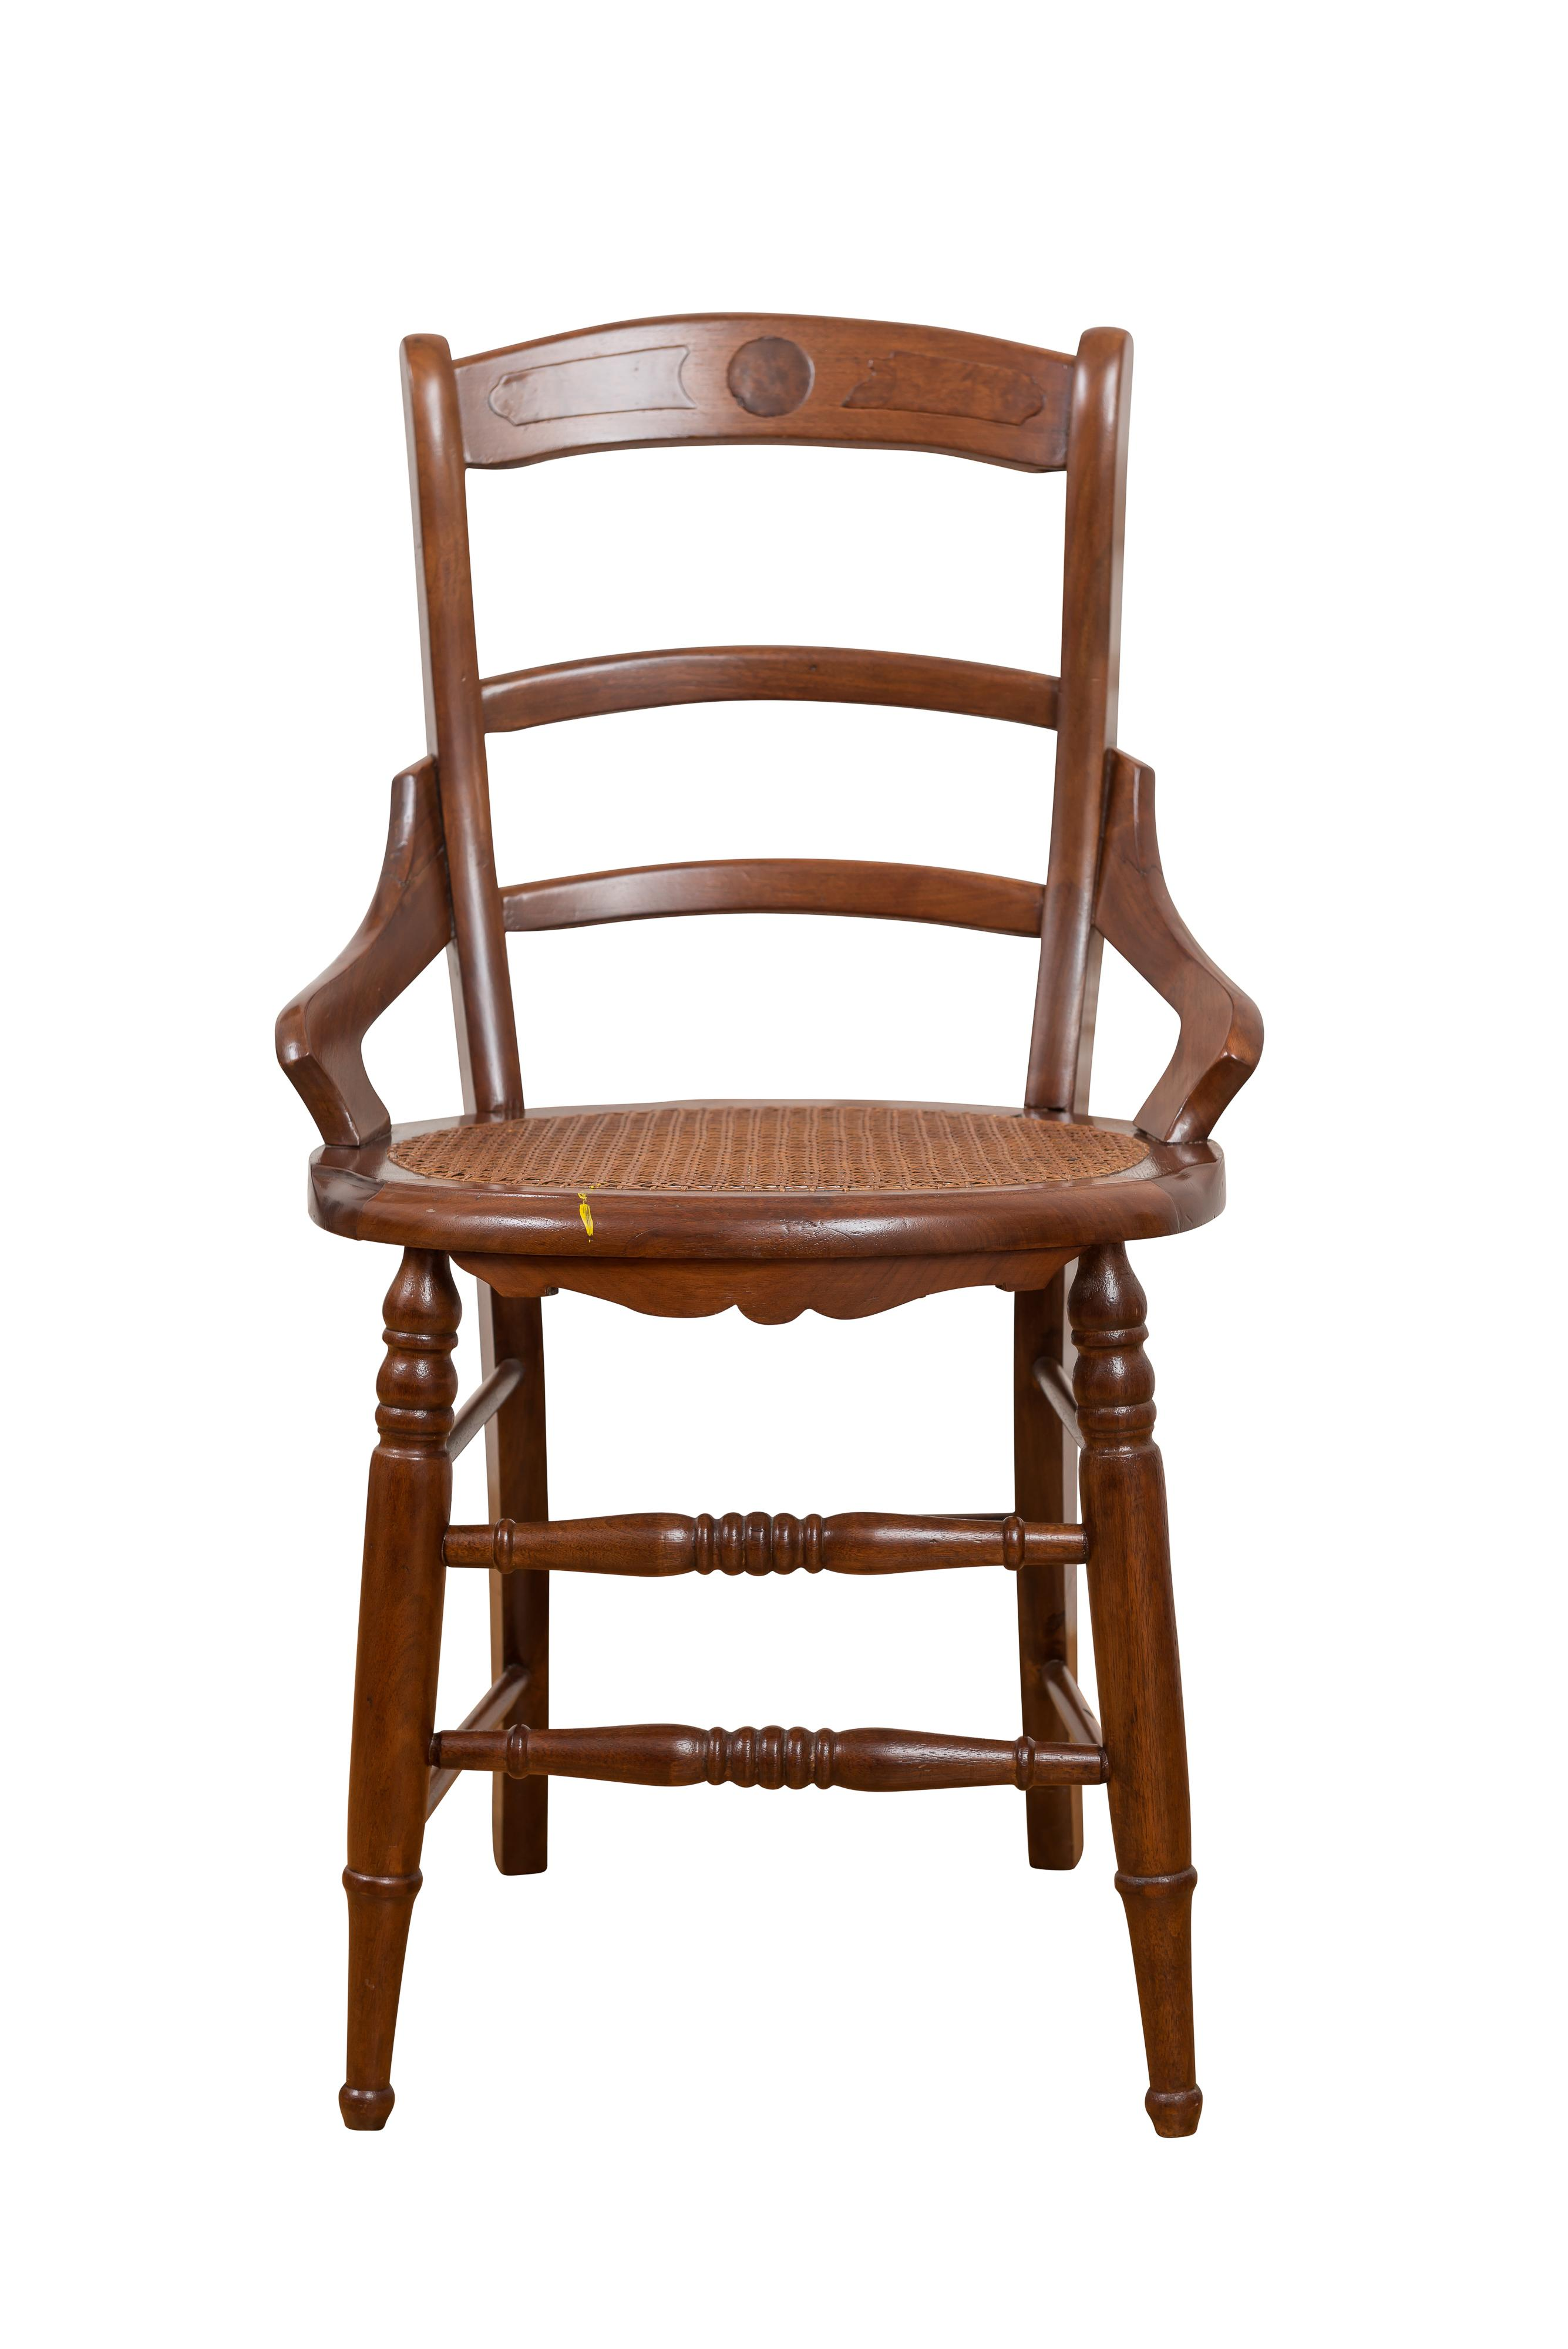 American Antique Ladder Back Cane Accent Chair  Chairish